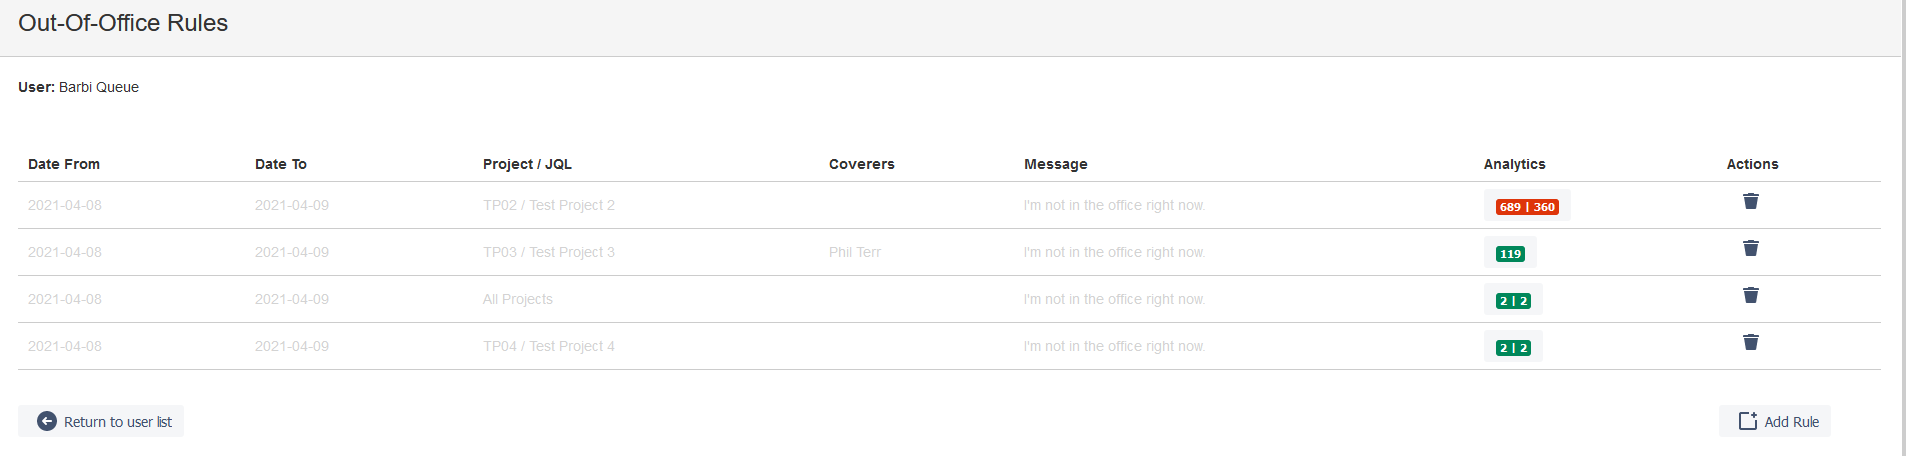 Out of Office rules for a specific Jira user